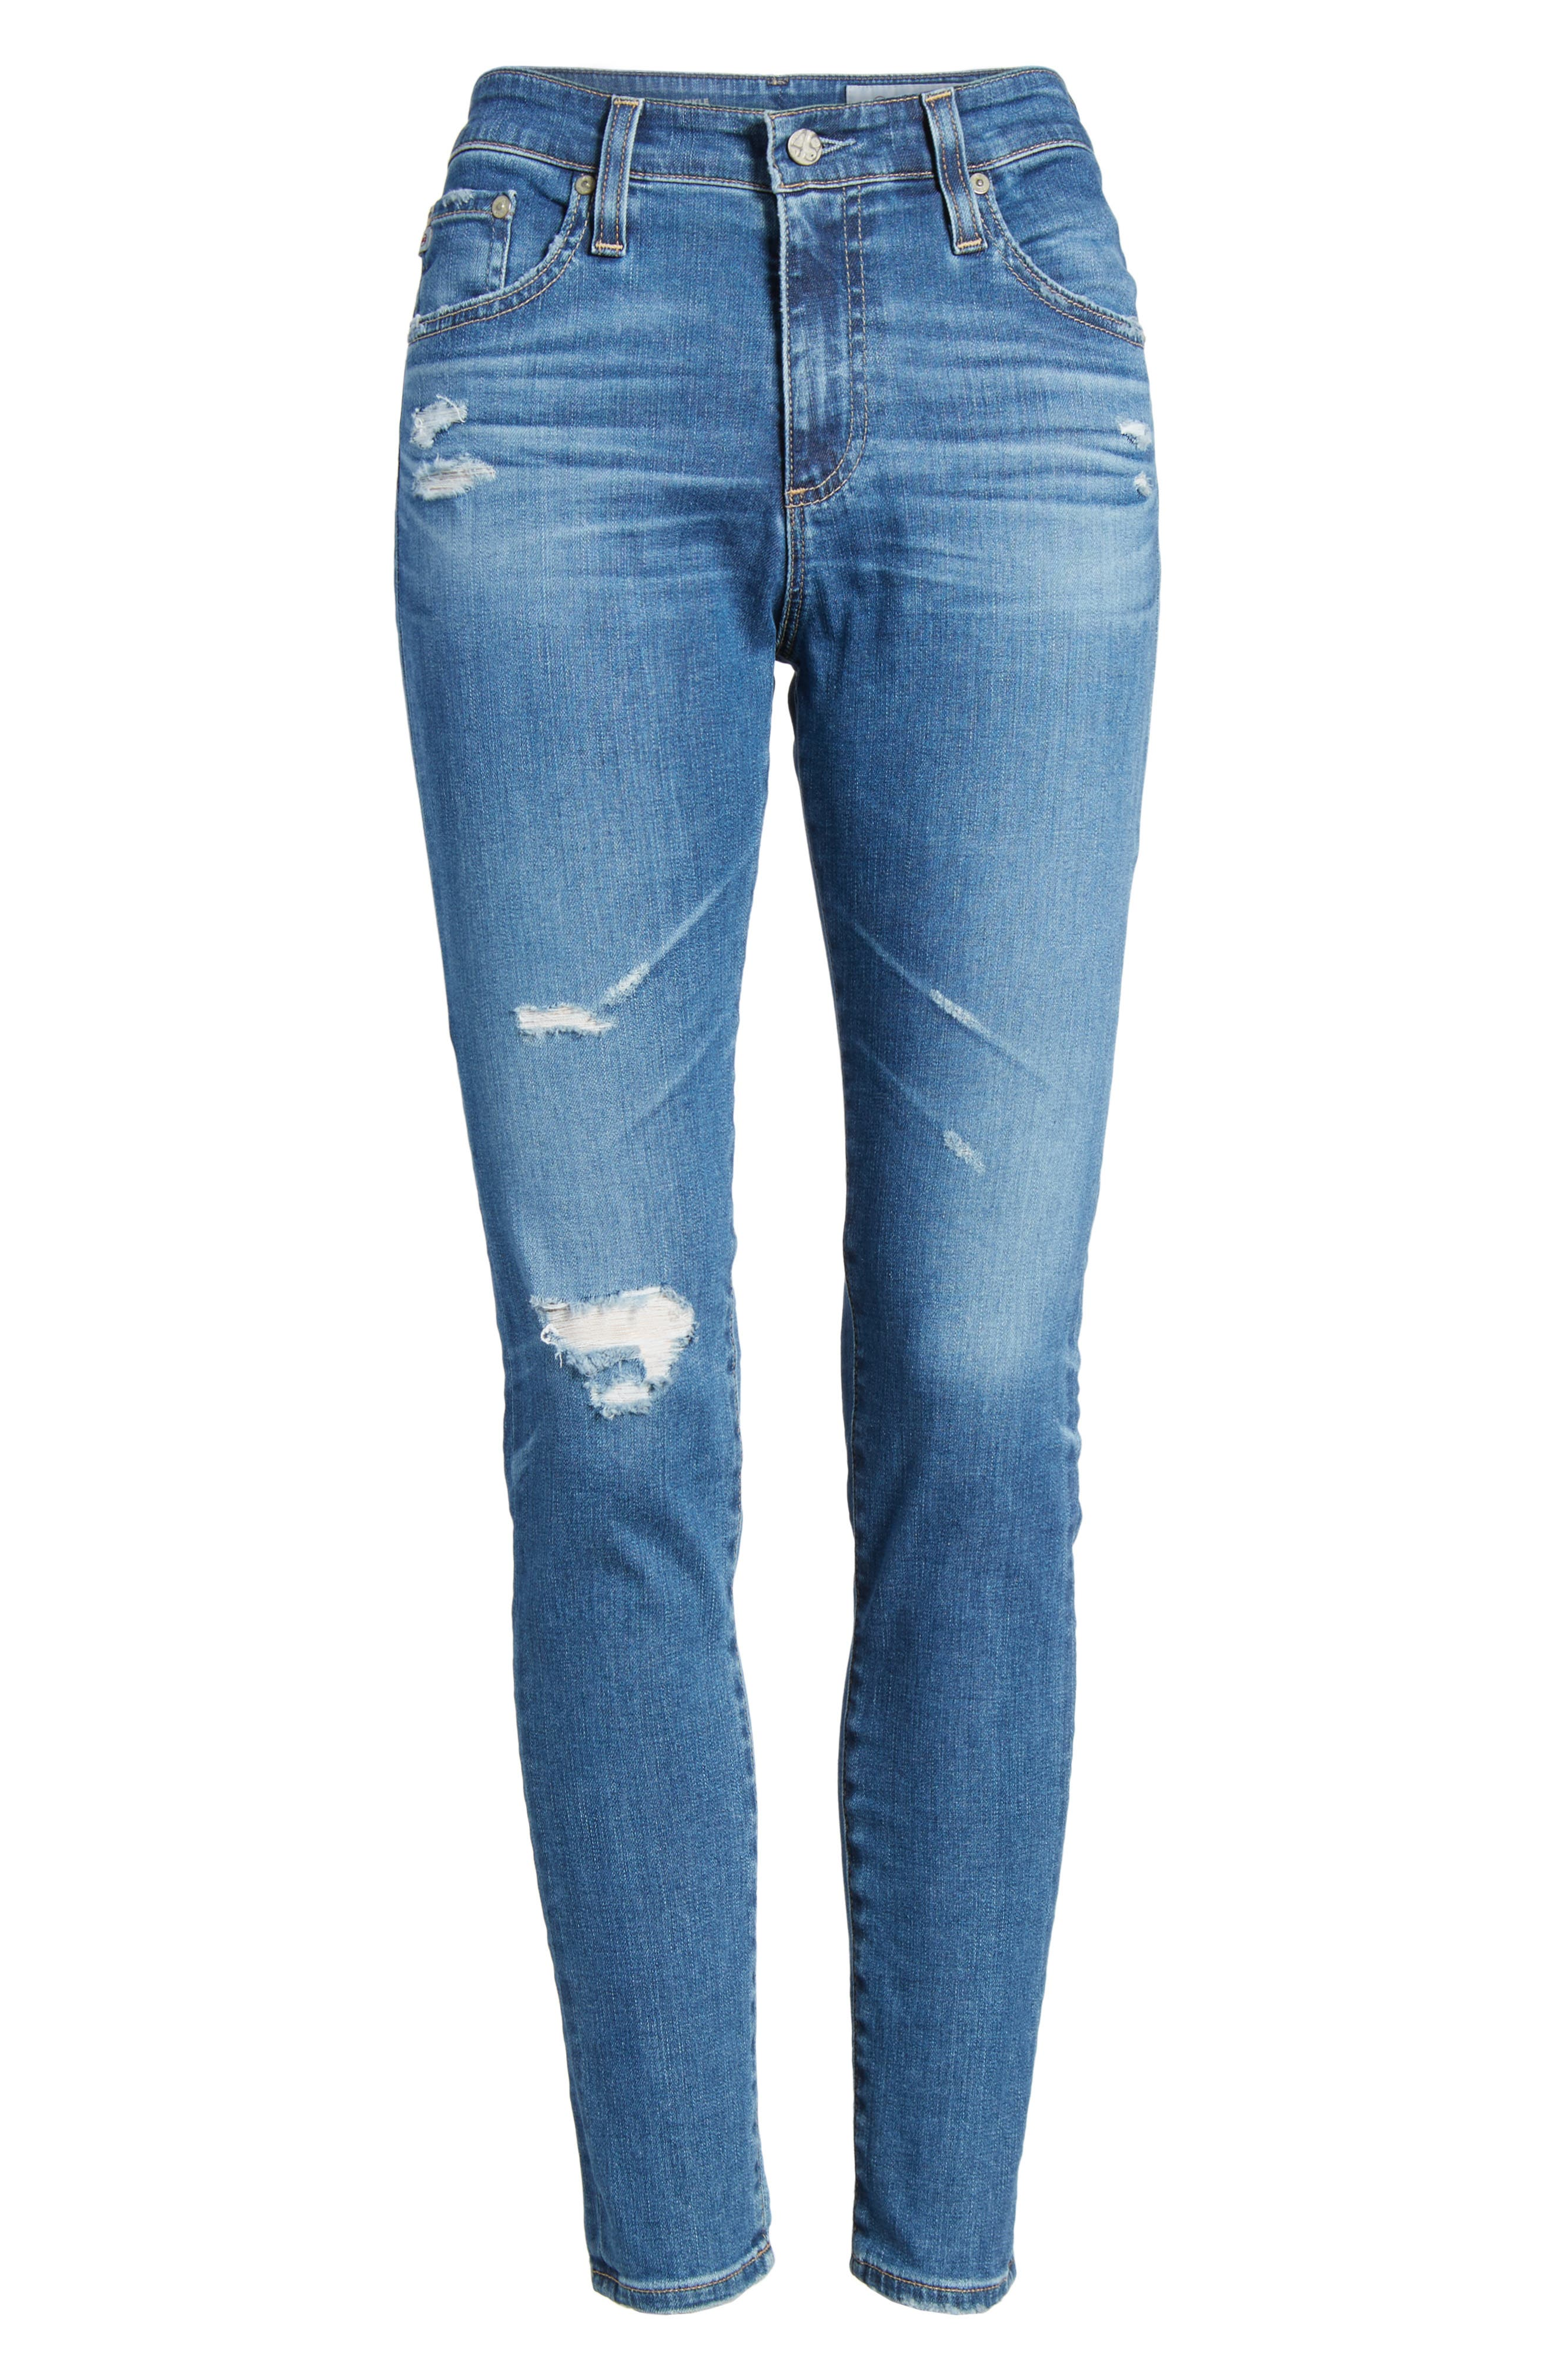 The Farrah High Waist Ankle Skinny Jeans,                             Alternate thumbnail 7, color,                             14 Year Blue Nile Destructed